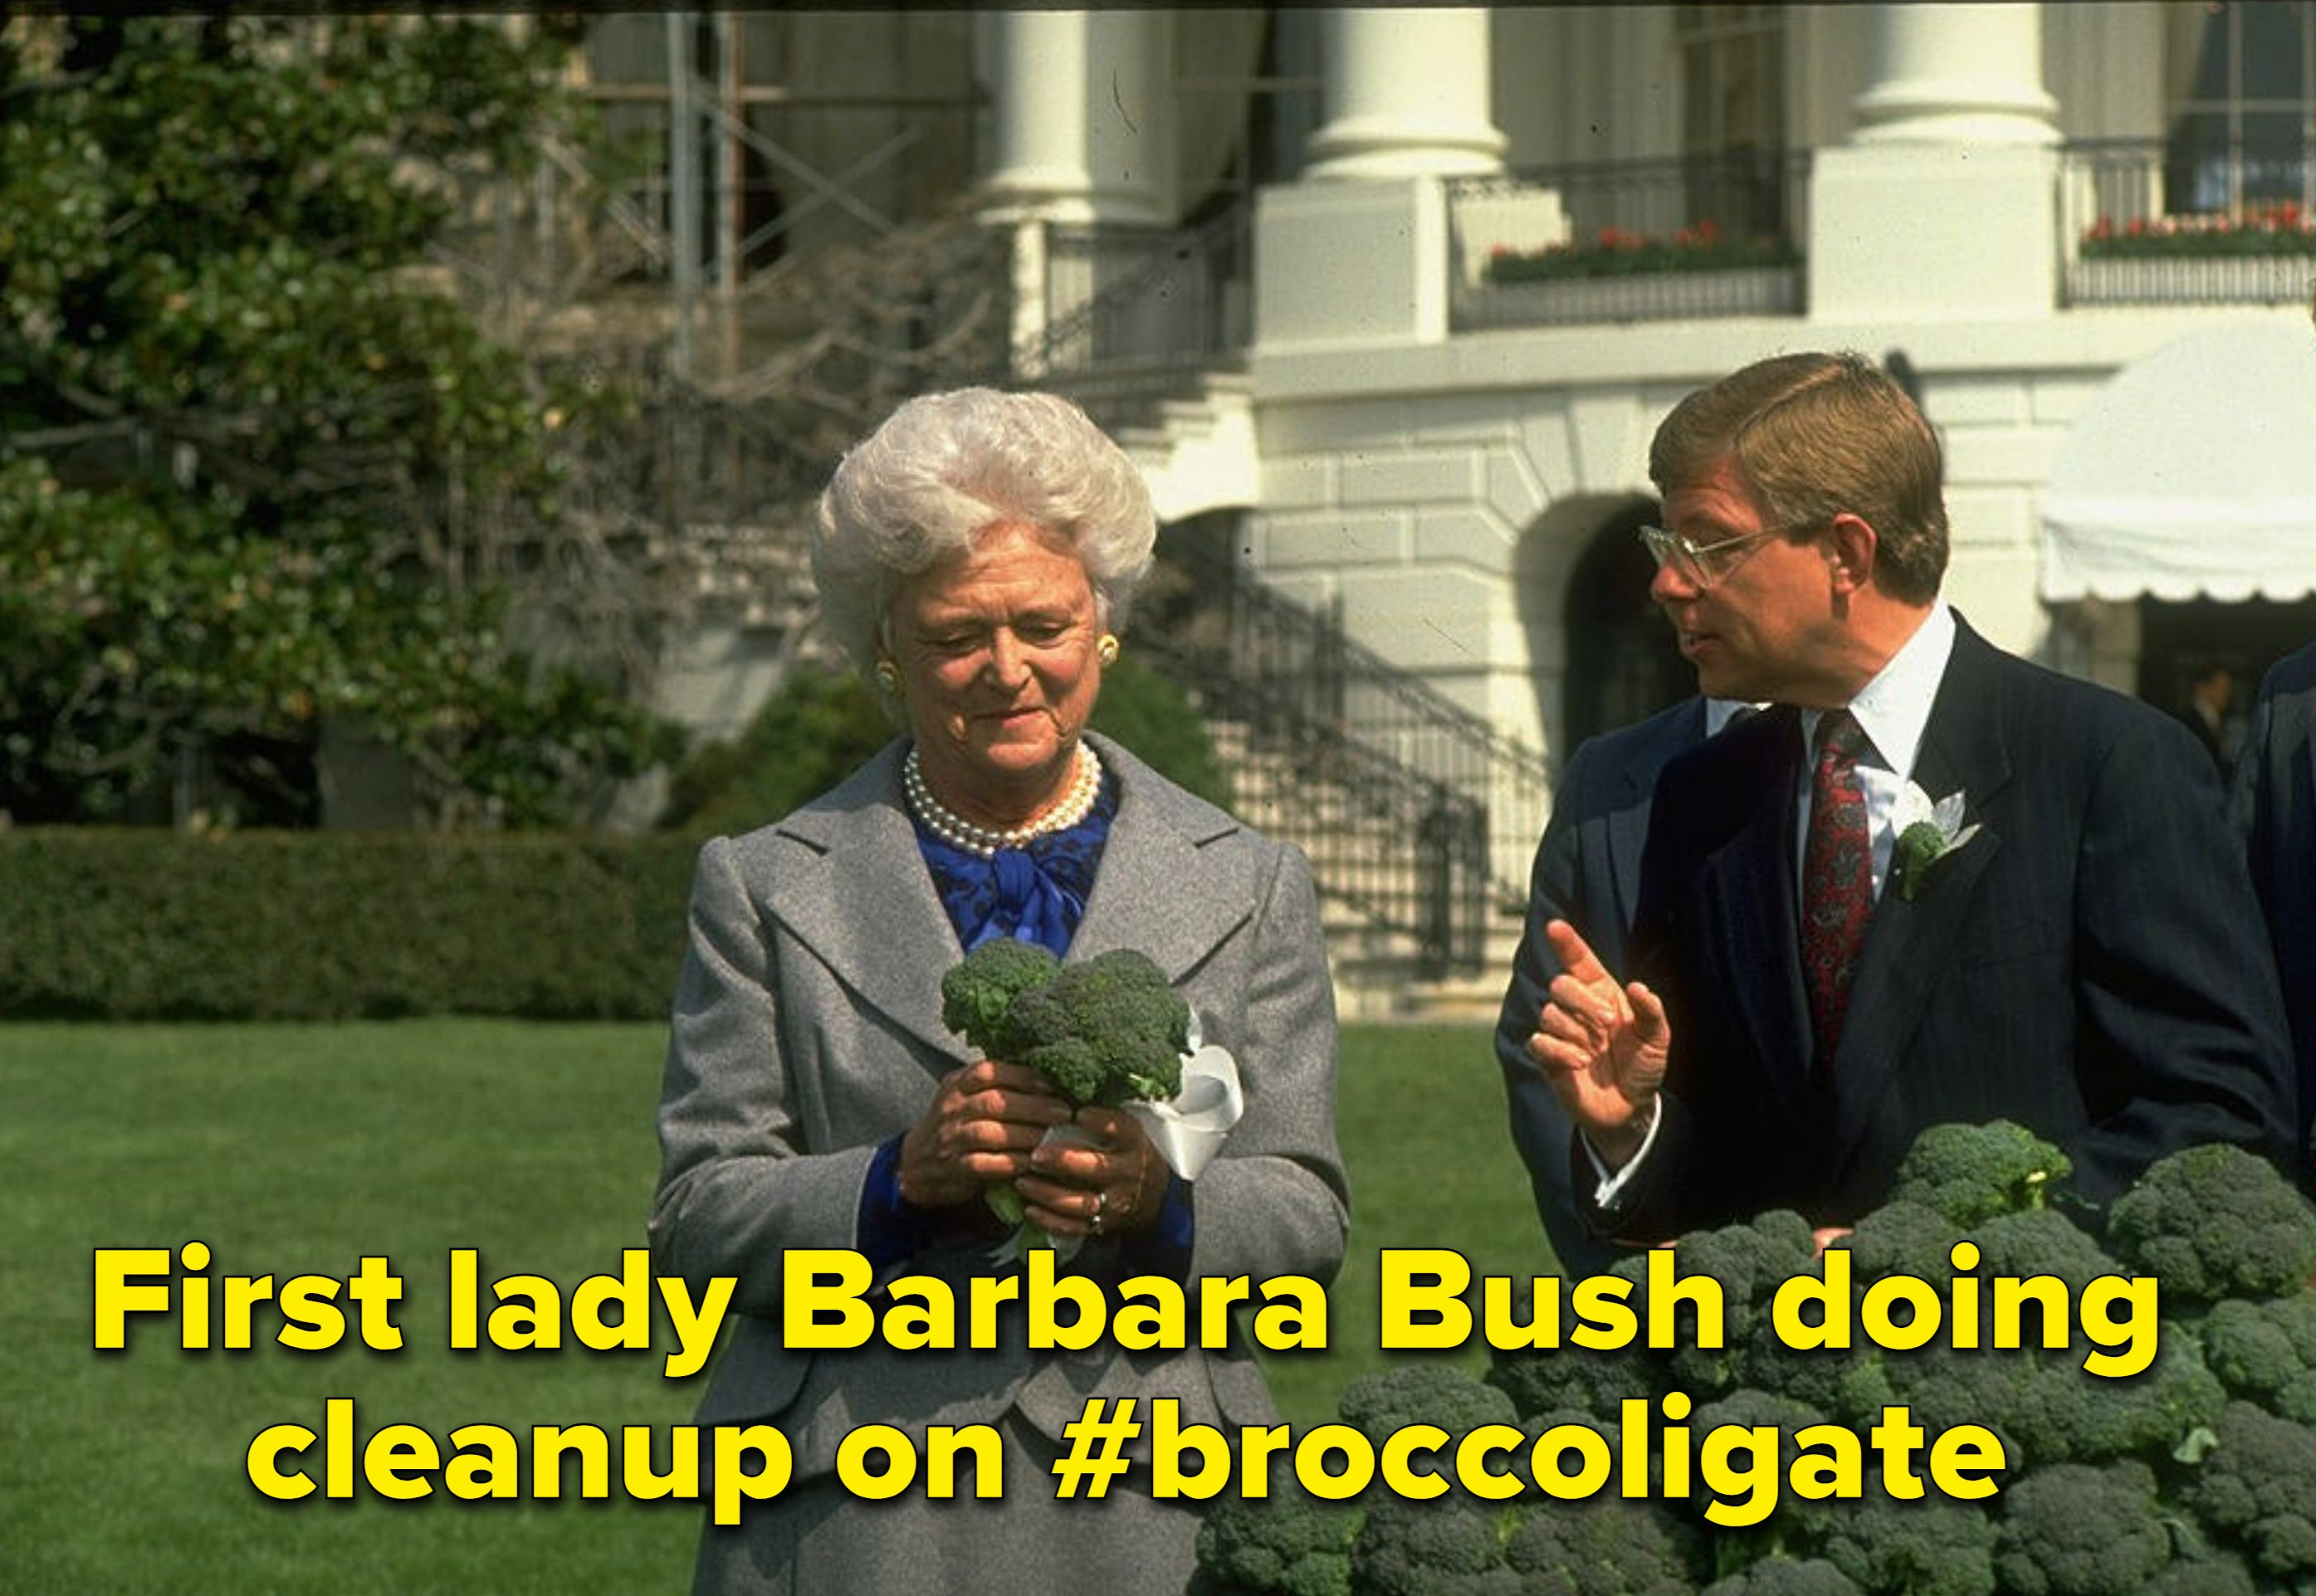 First lady barbara bush holds broccoli at a press conference trying to fix her husband's faux paus